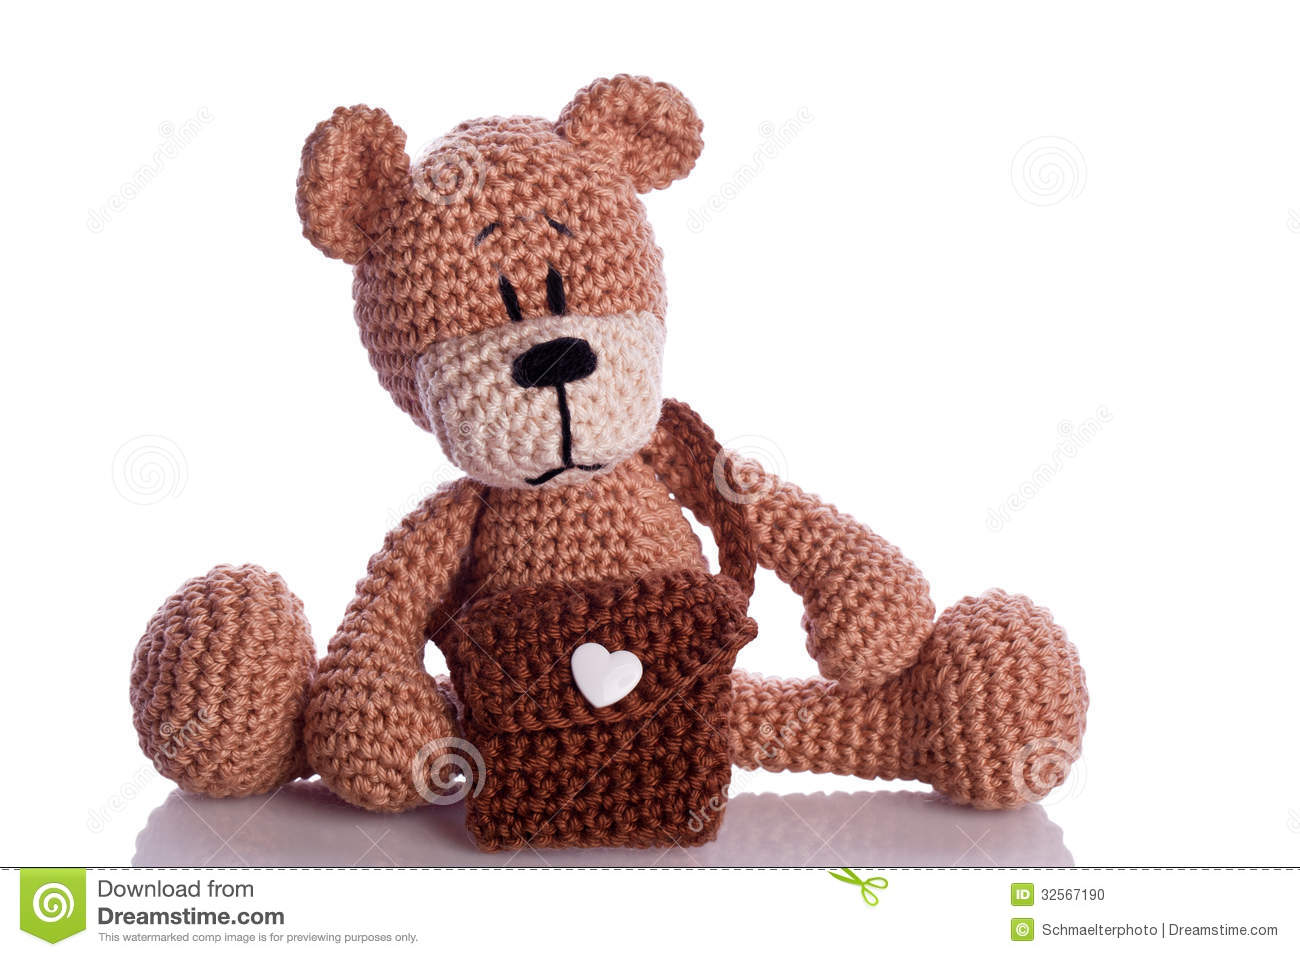 crochet-teddy-bear-pants-6 | lilleliis | 957x1300